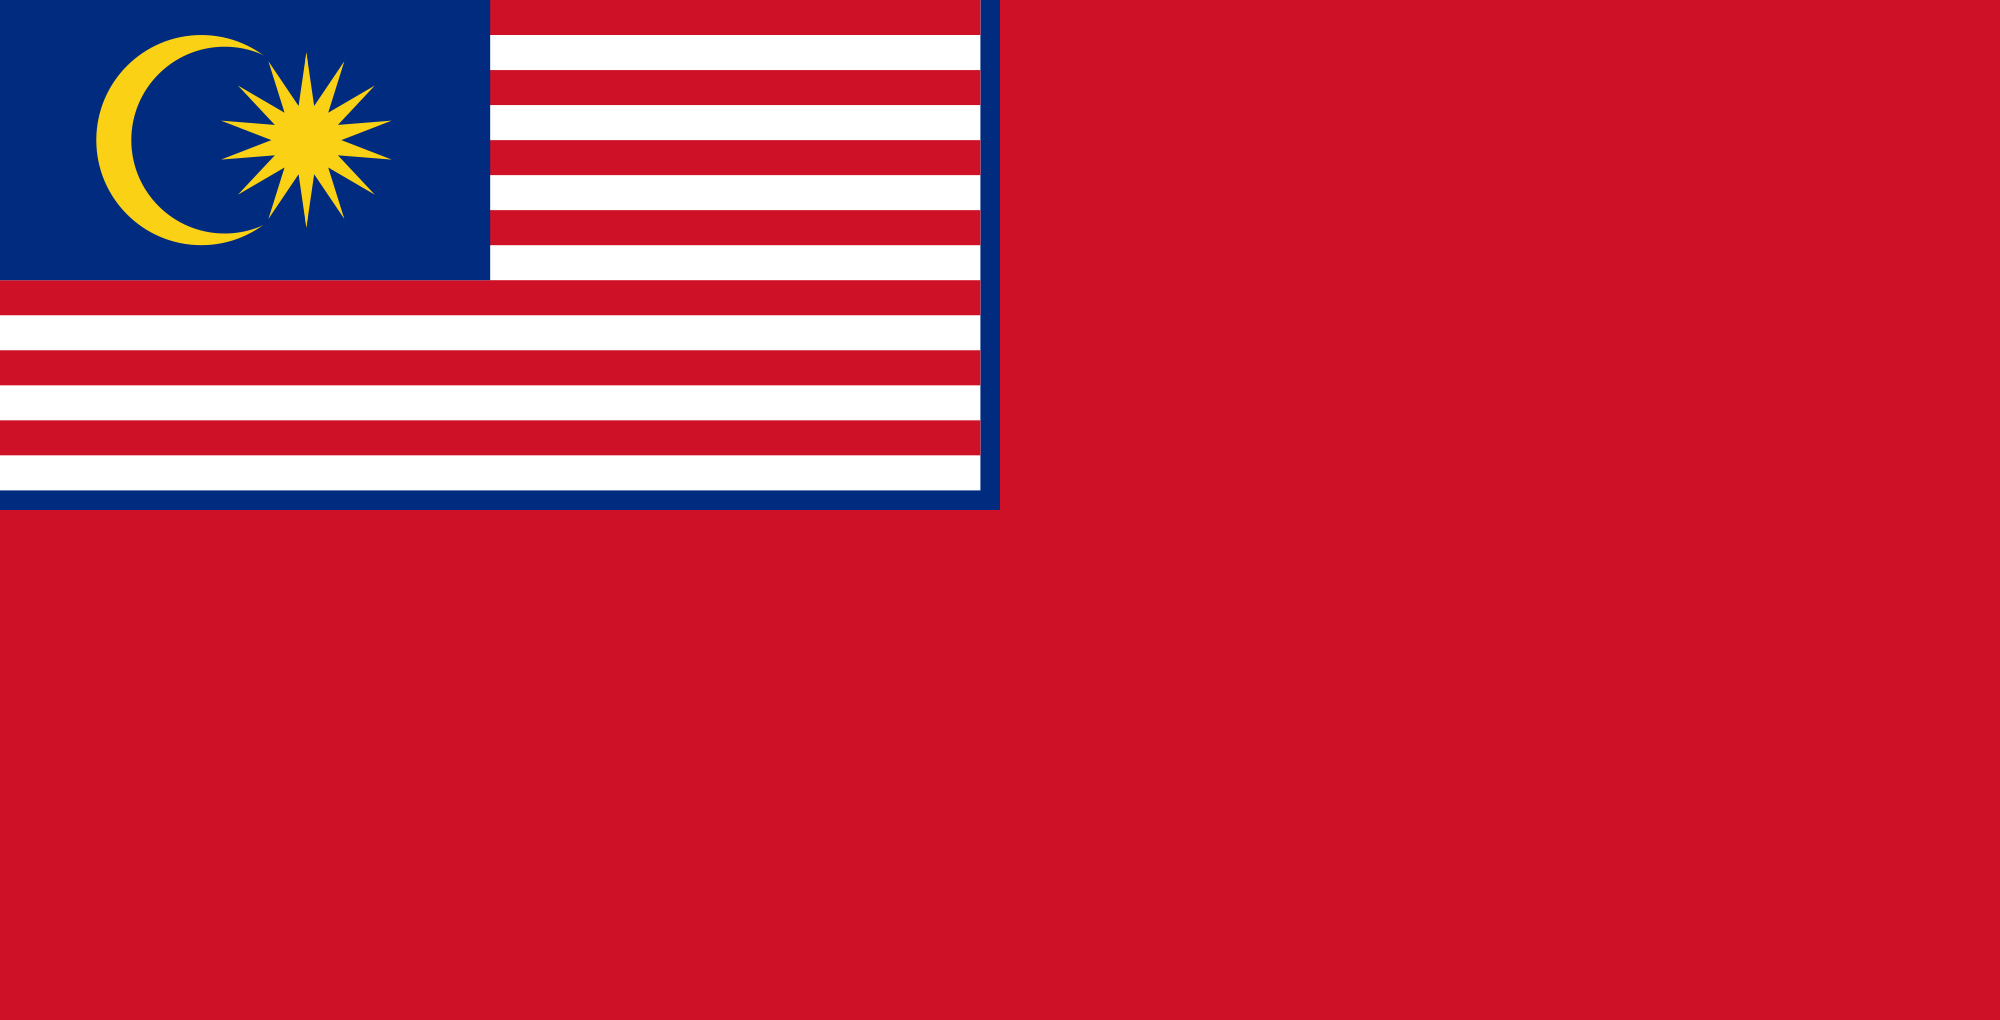 Flag of Malaysia (Civil Ensign)